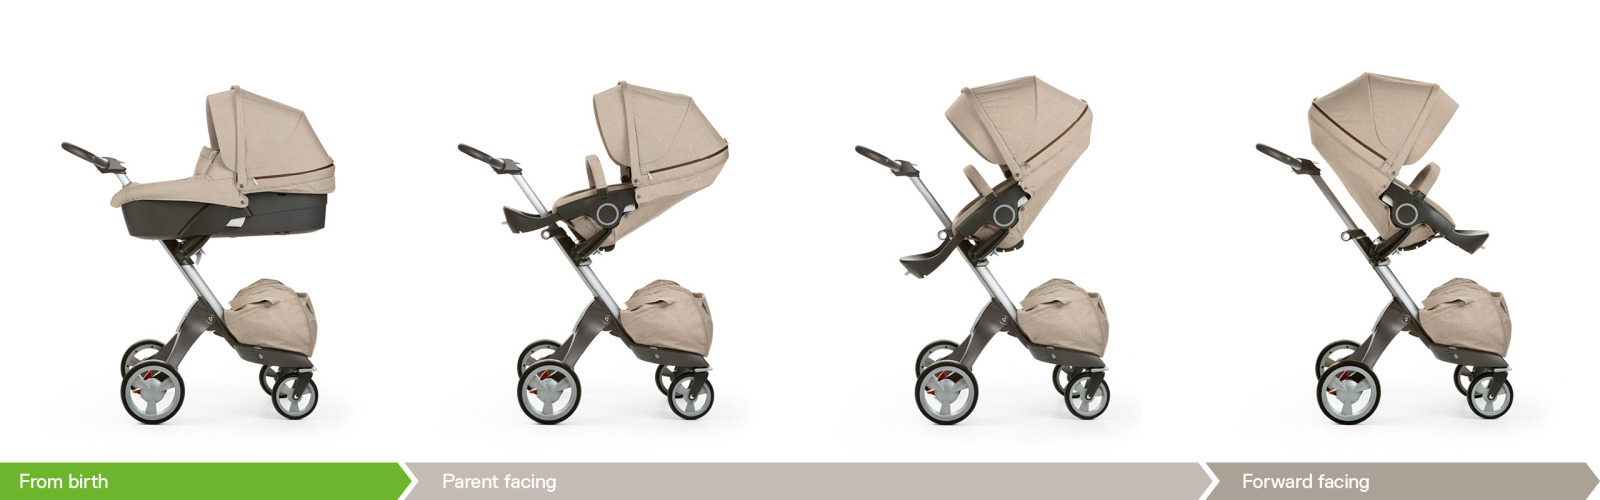 Stokke Xplory grow web